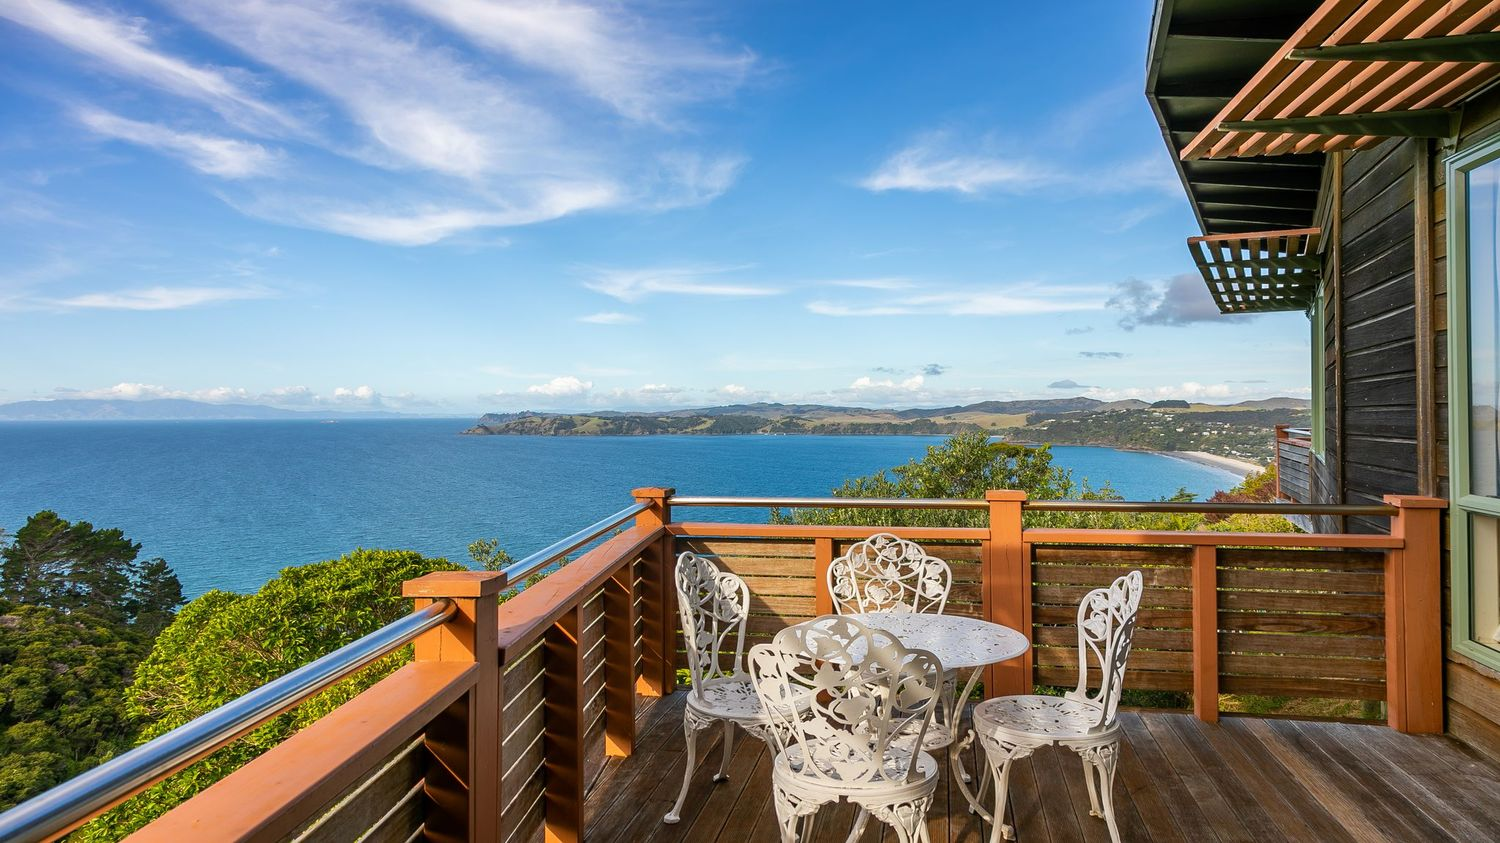 4._Seaview_with_view_from_verandah_and_outdoor_setting_1500x843.jpeg